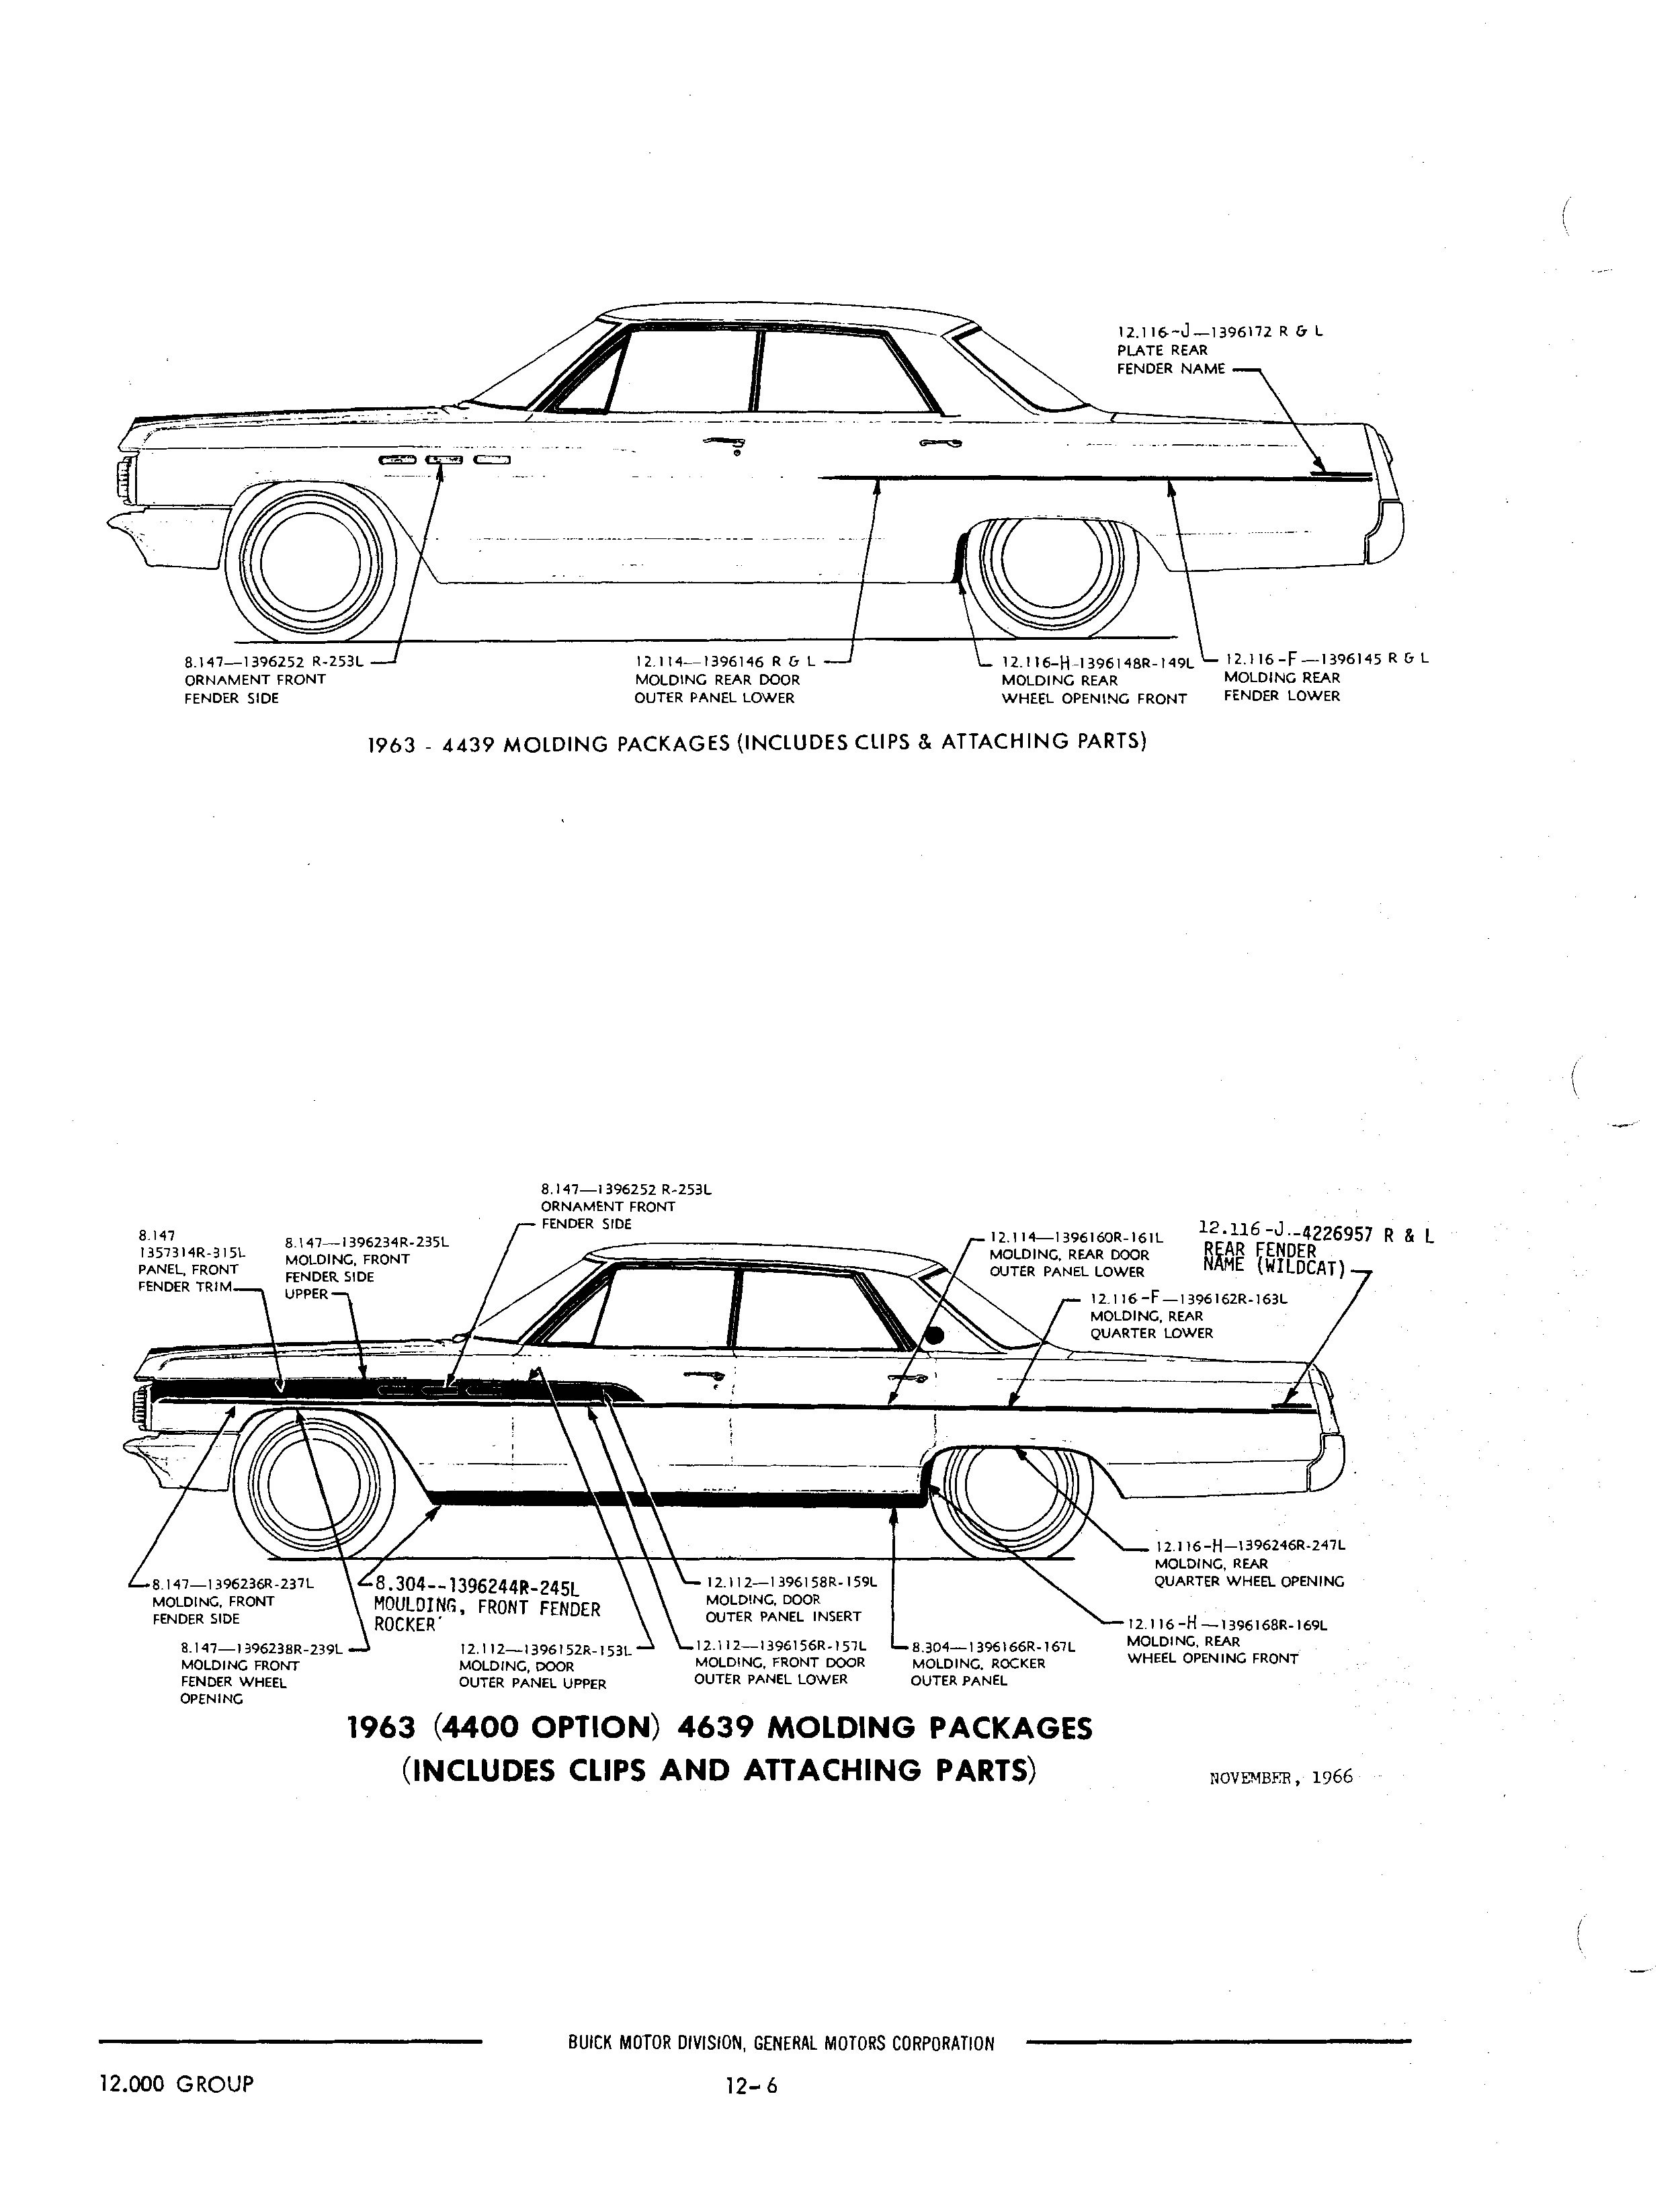 Flathead drawings electrical additionally Mercedes Om617 Ignition Schematic likewise 3800 3 8 Chevy Engine Diagram also Pontiac Restoration Parts Catalog together with Wrangler Steering Column Parts. on buick parts catalog